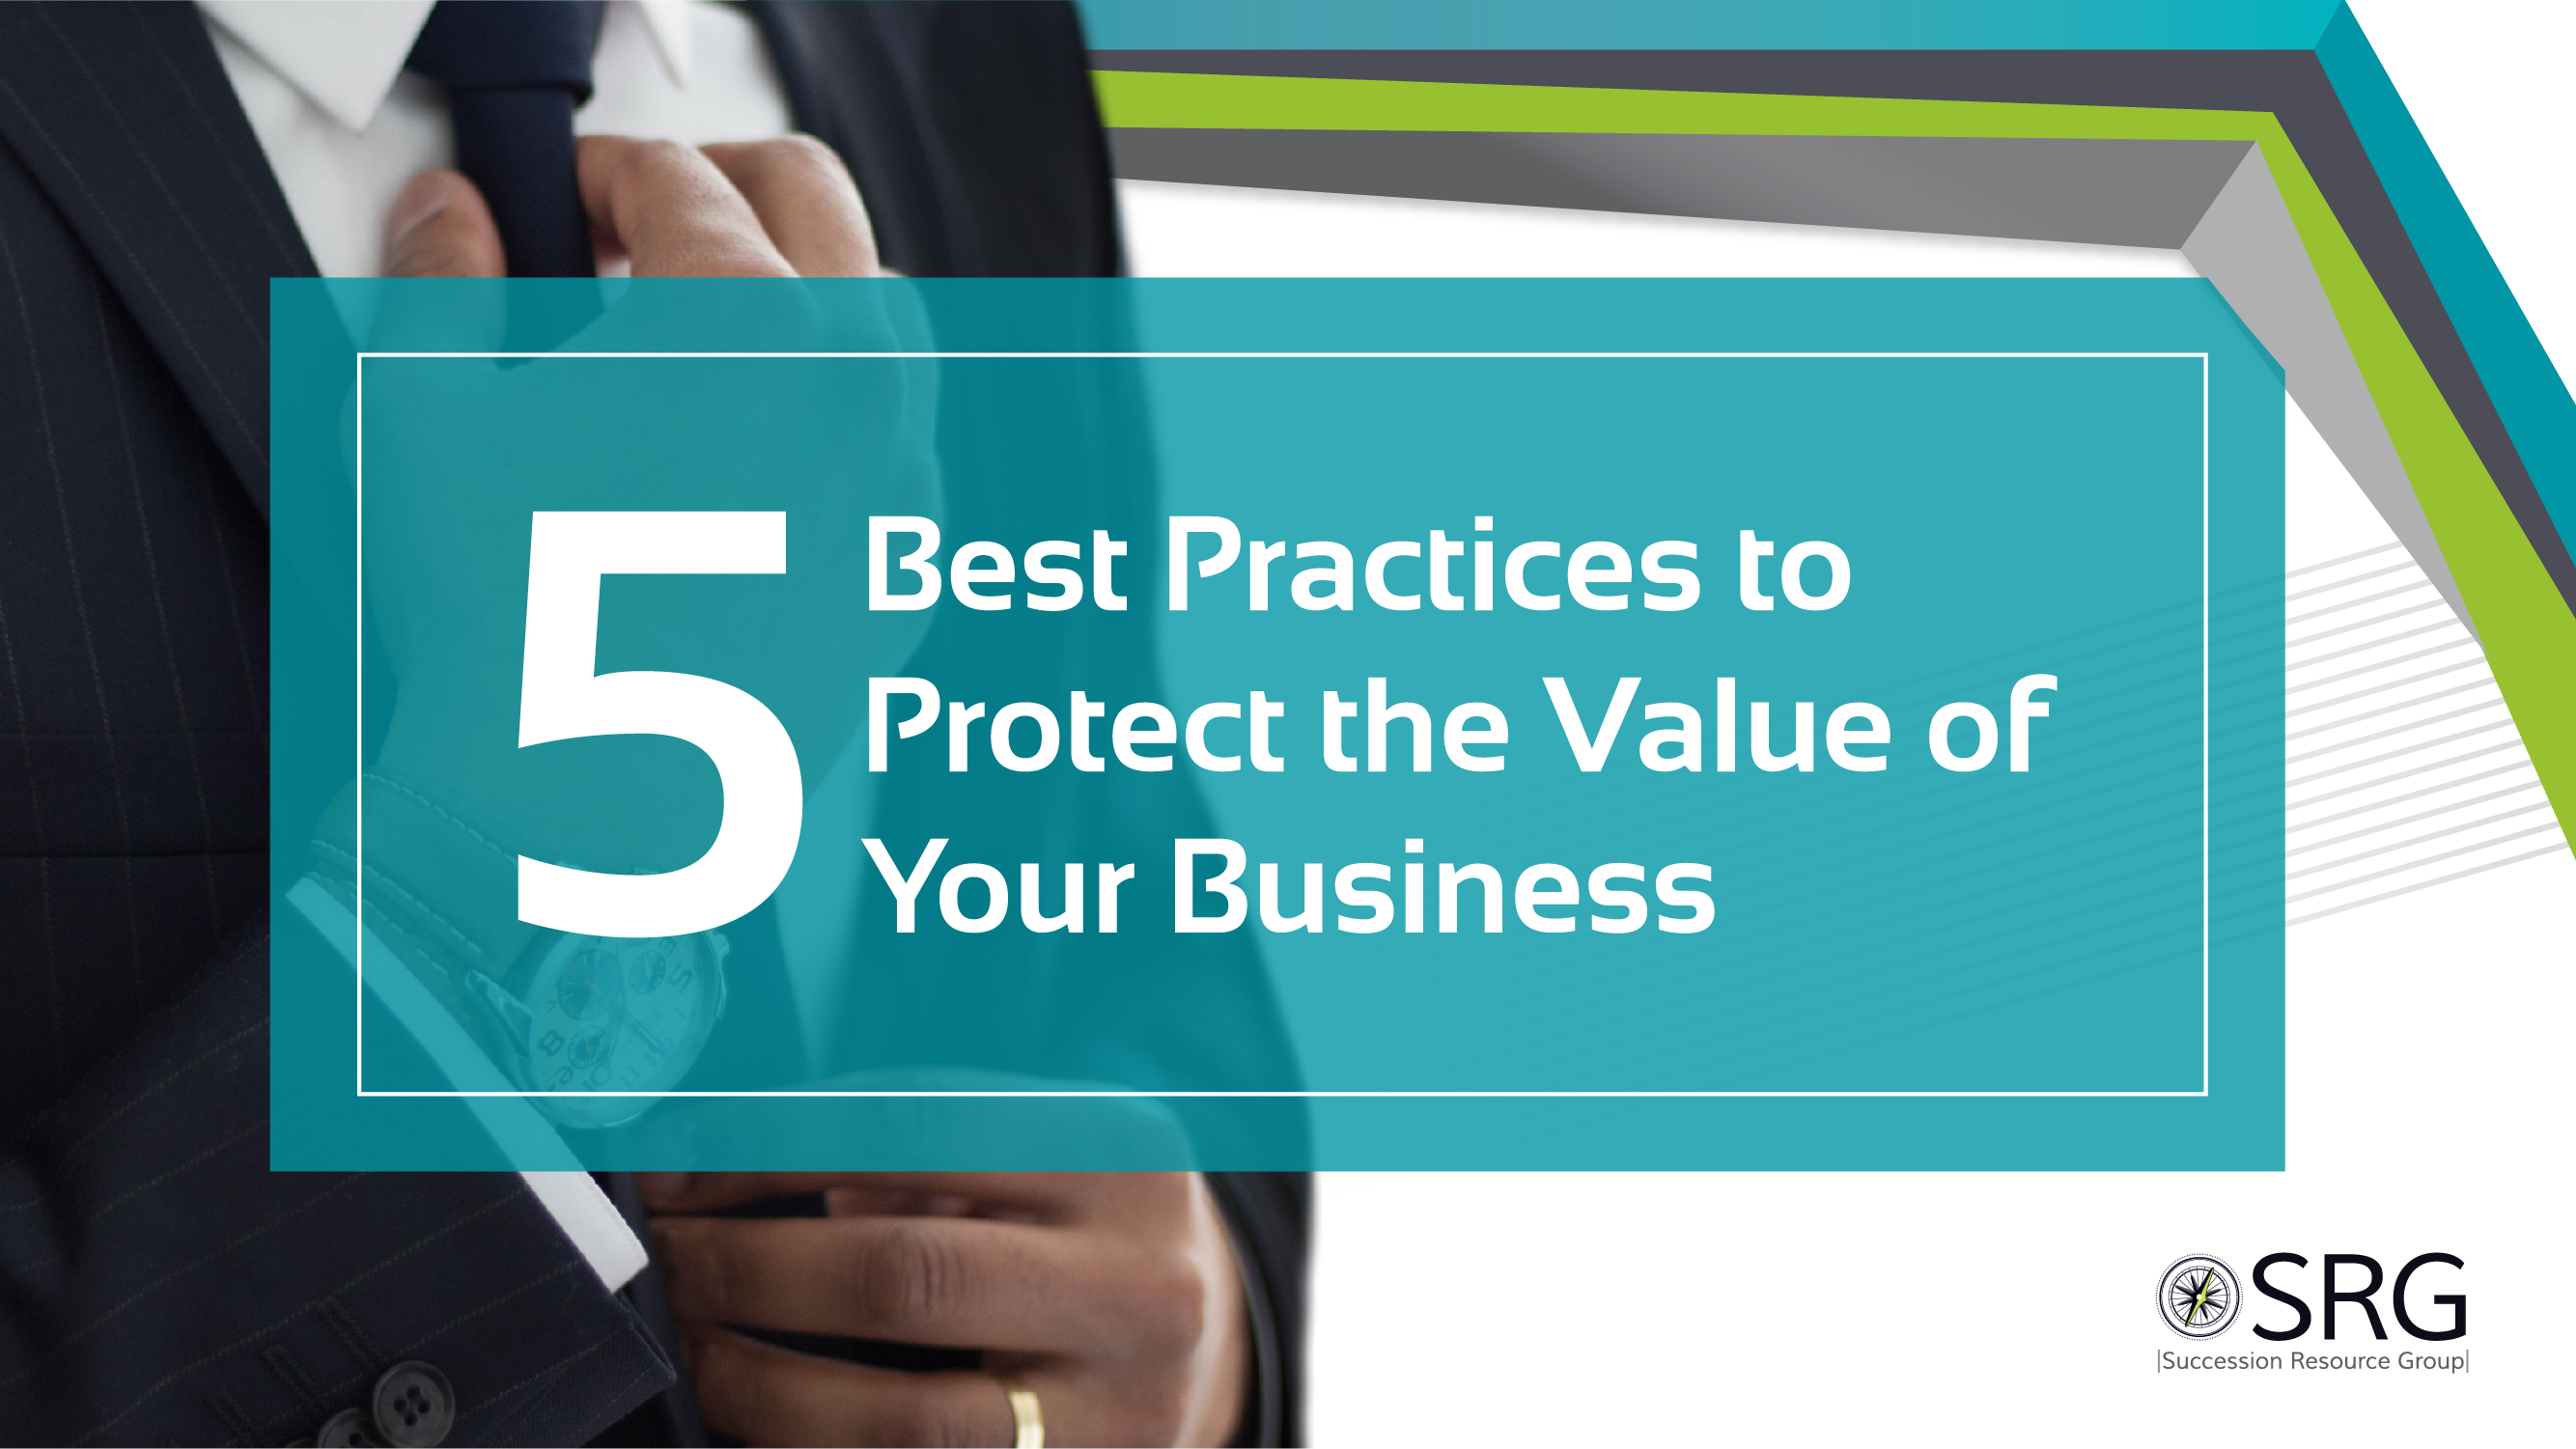 5 Best Practices to Protect the Value of Your Business_YouTube Video Uploads